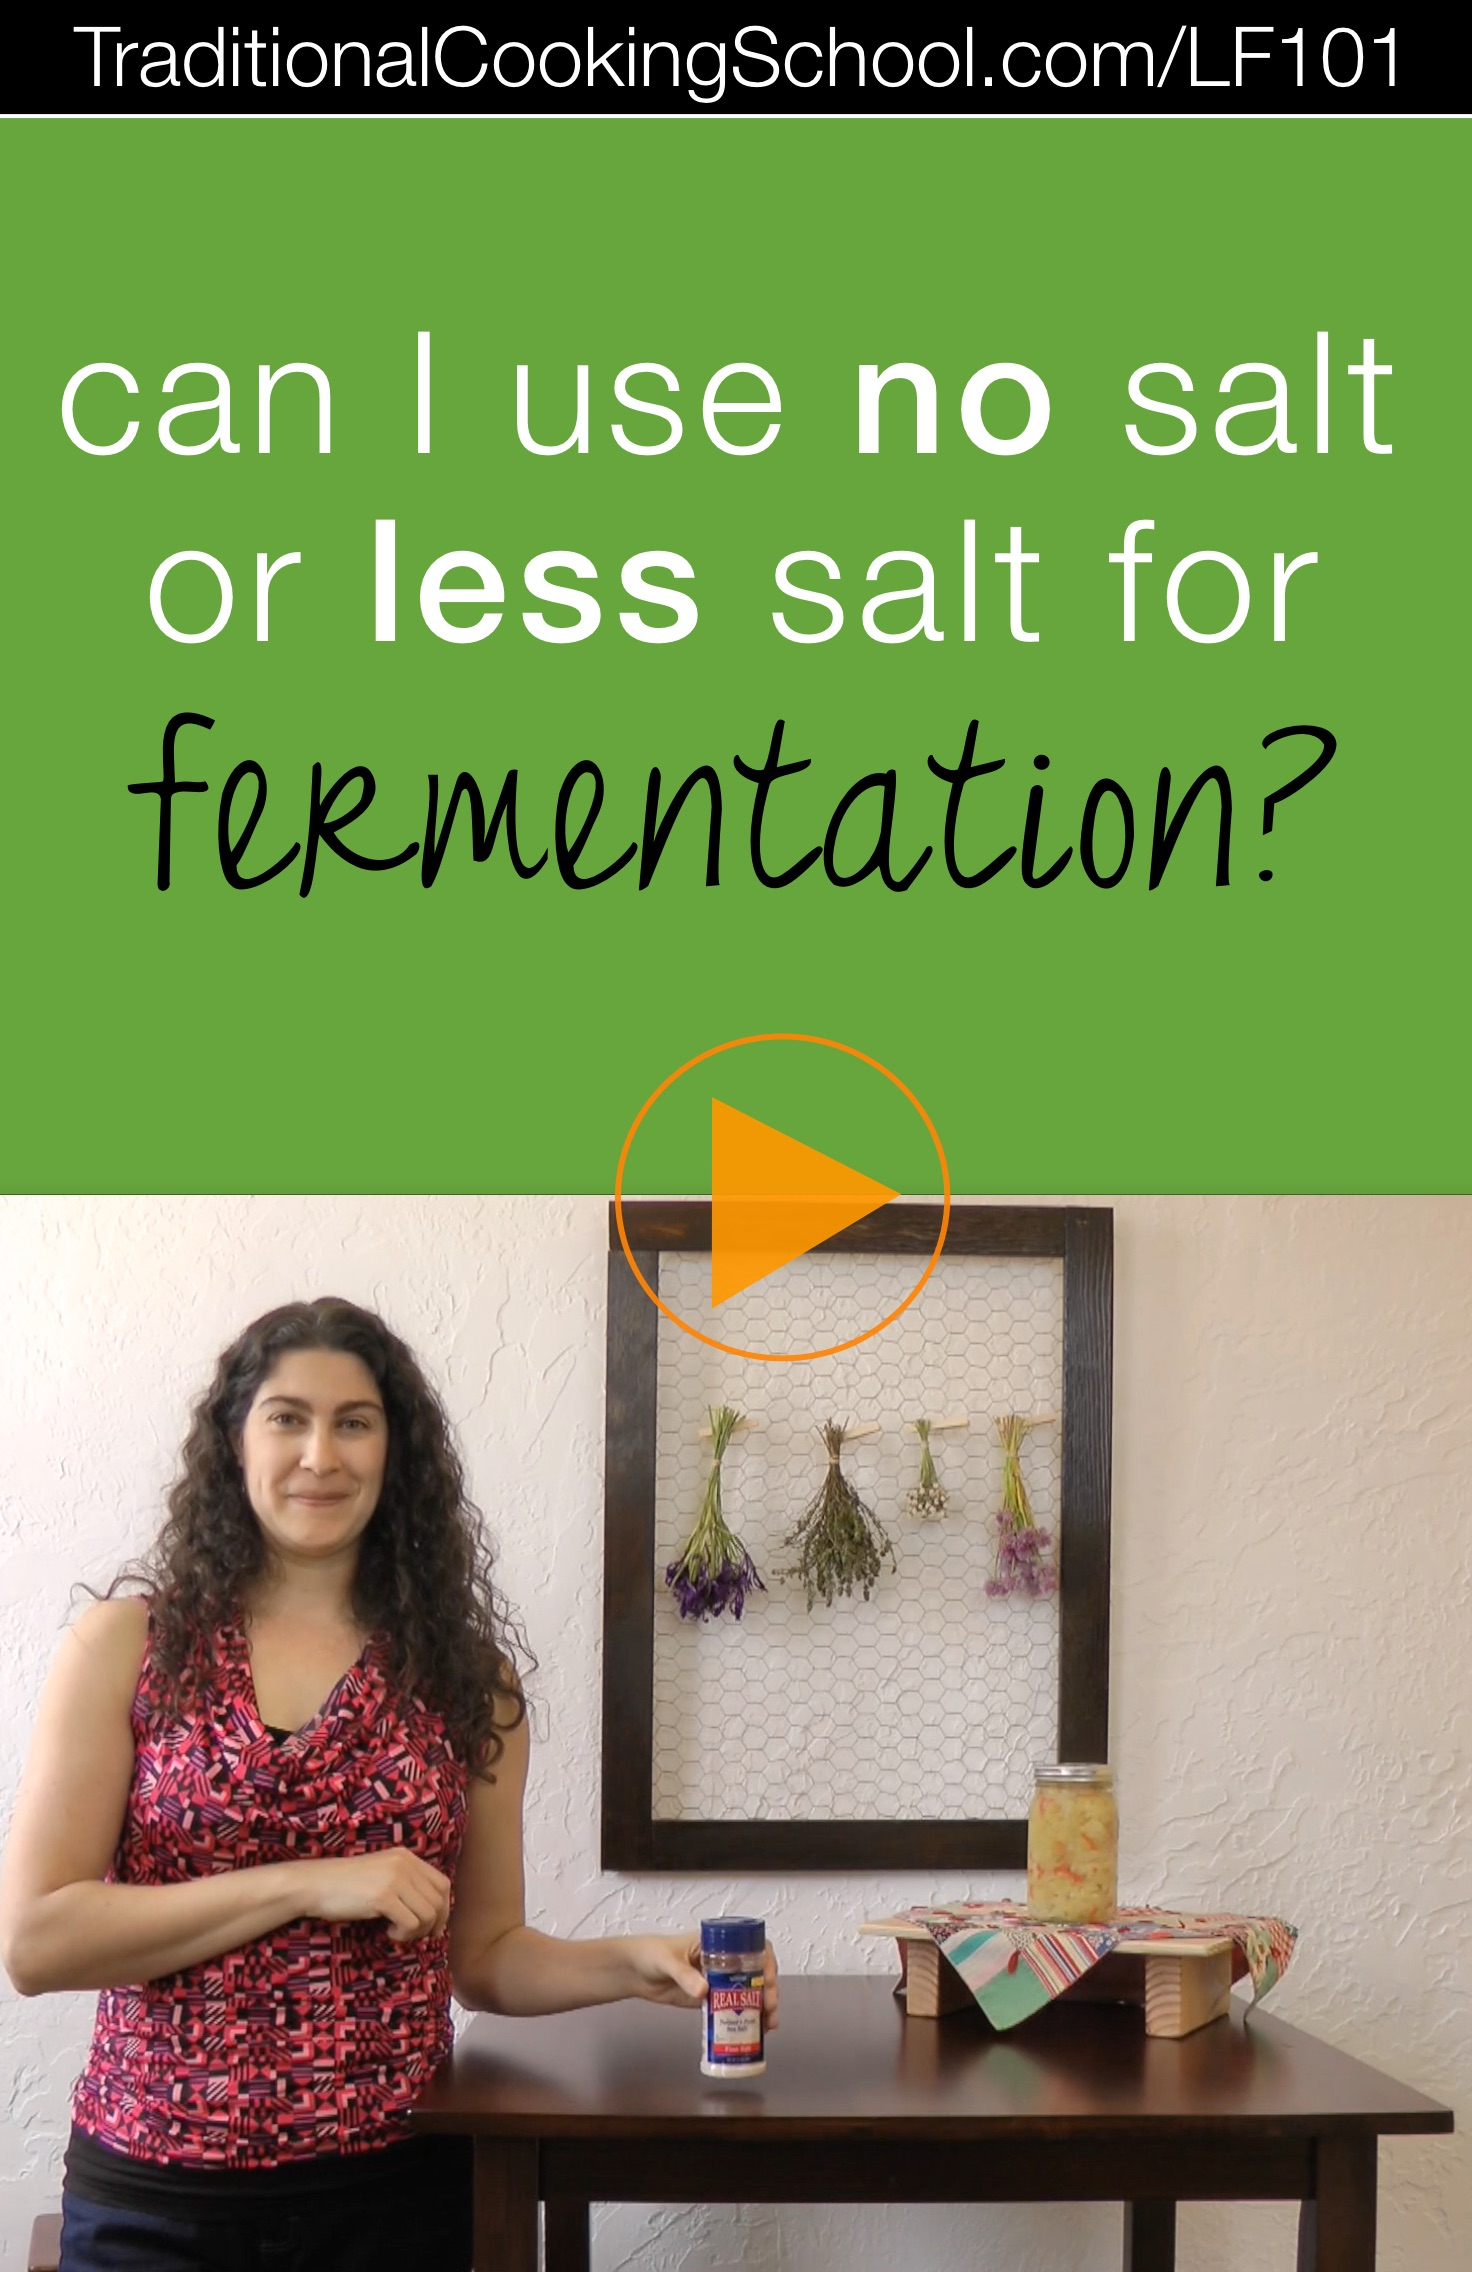 Can I Use No Salt or Less Salt for Fermentation? | Over the years, I've received lots of questions about fermenting. Today's question in my Lacto-Fermentation 101 series is... can you use no salt or less salt in fermentation? The answer is... | TraditionalCookingSchool.com/LF101